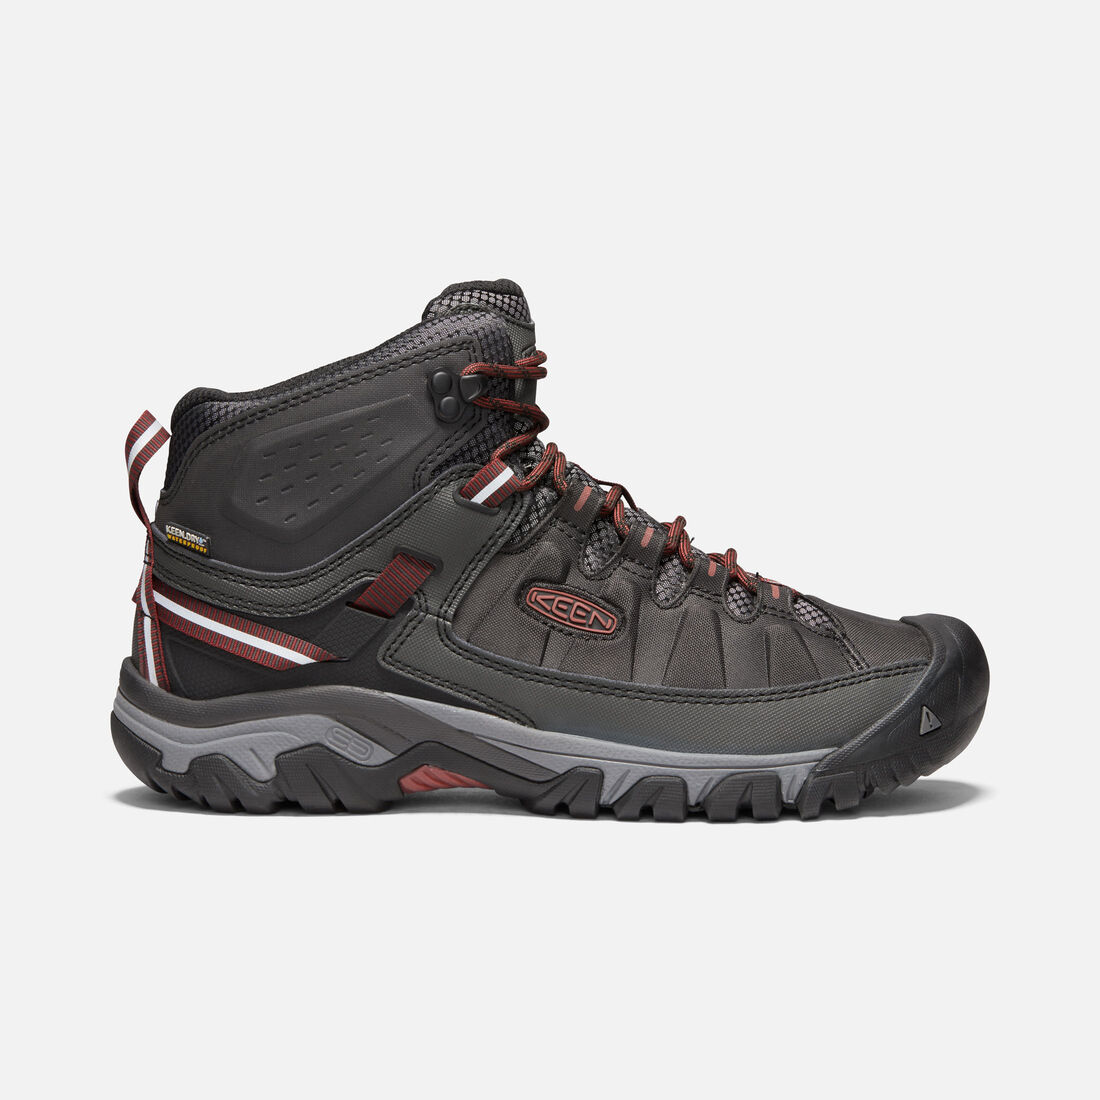 e88e1cf12d5a Men s TARGHEE EXP Waterproof Mid - This hiking boot s mission is ...